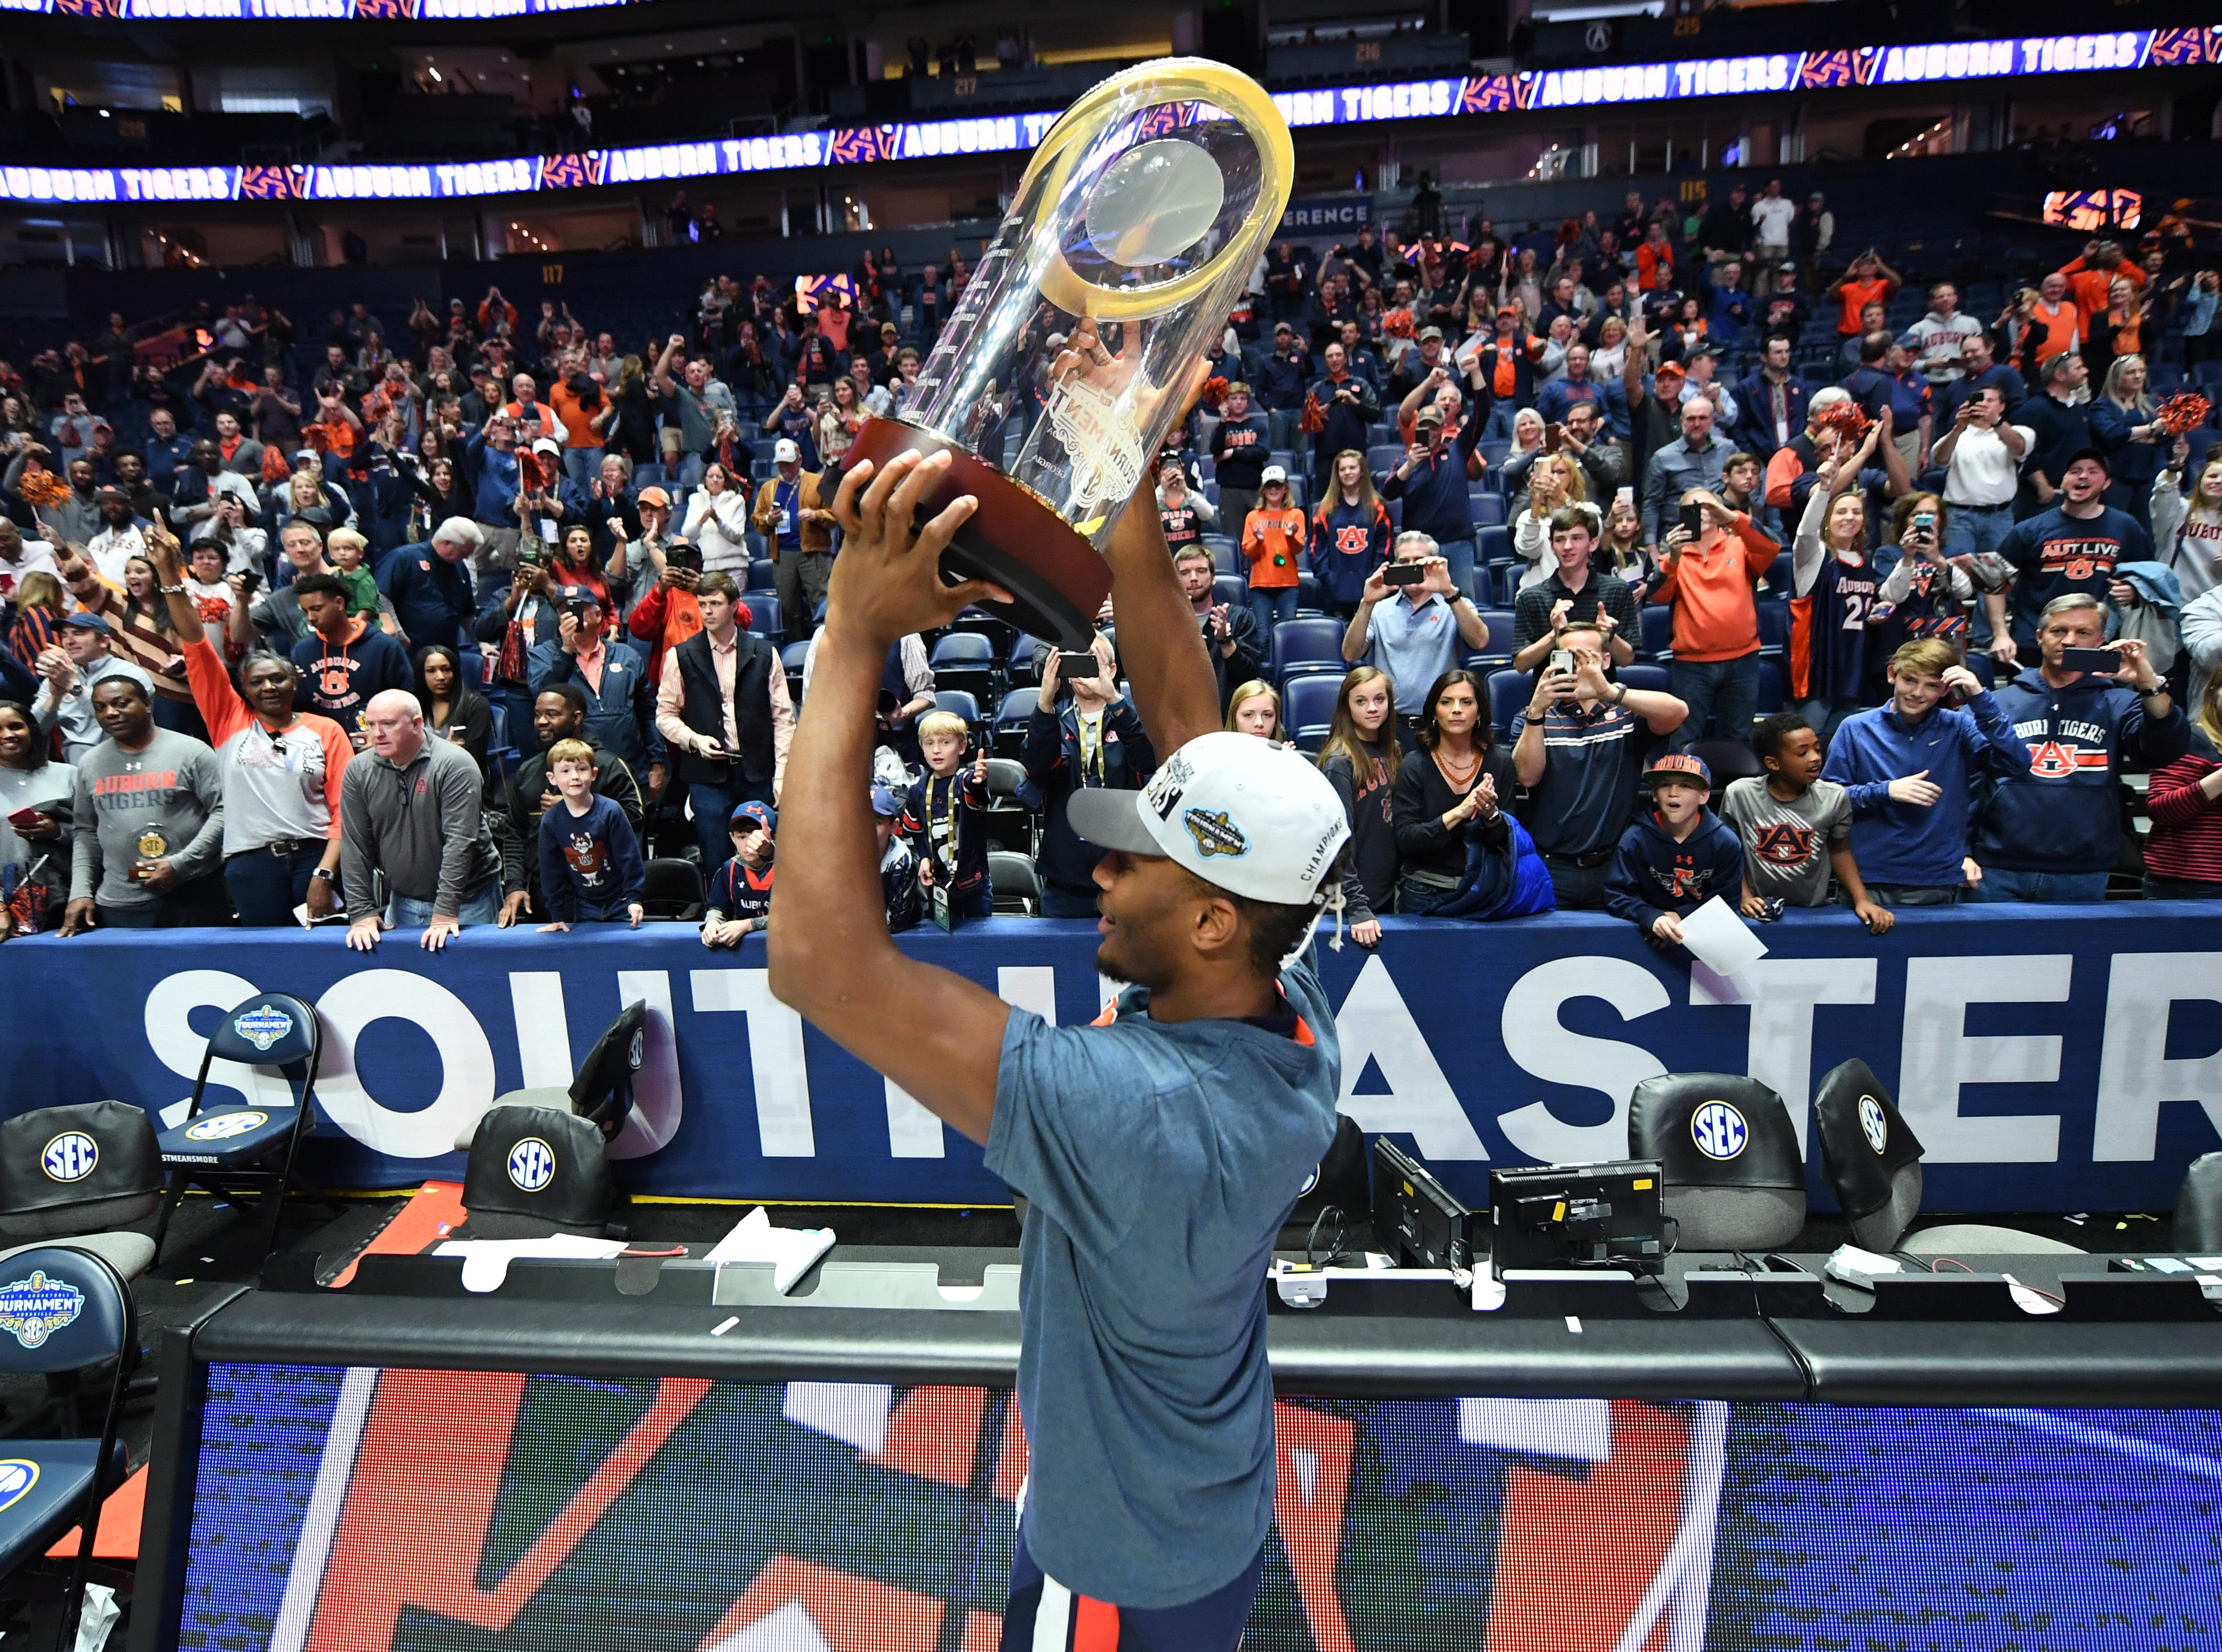 Mar 17, 2019; Nashville, TN, USA; Auburn Tigers forward Anfernee McLemore (24) celebrates with the crowd after beating the Tennessee Volunteers in the SEC conference tournament championship game at Bridgestone Arena. Mandatory Credit: Christopher Hanewinckel-USA TODAY Sports